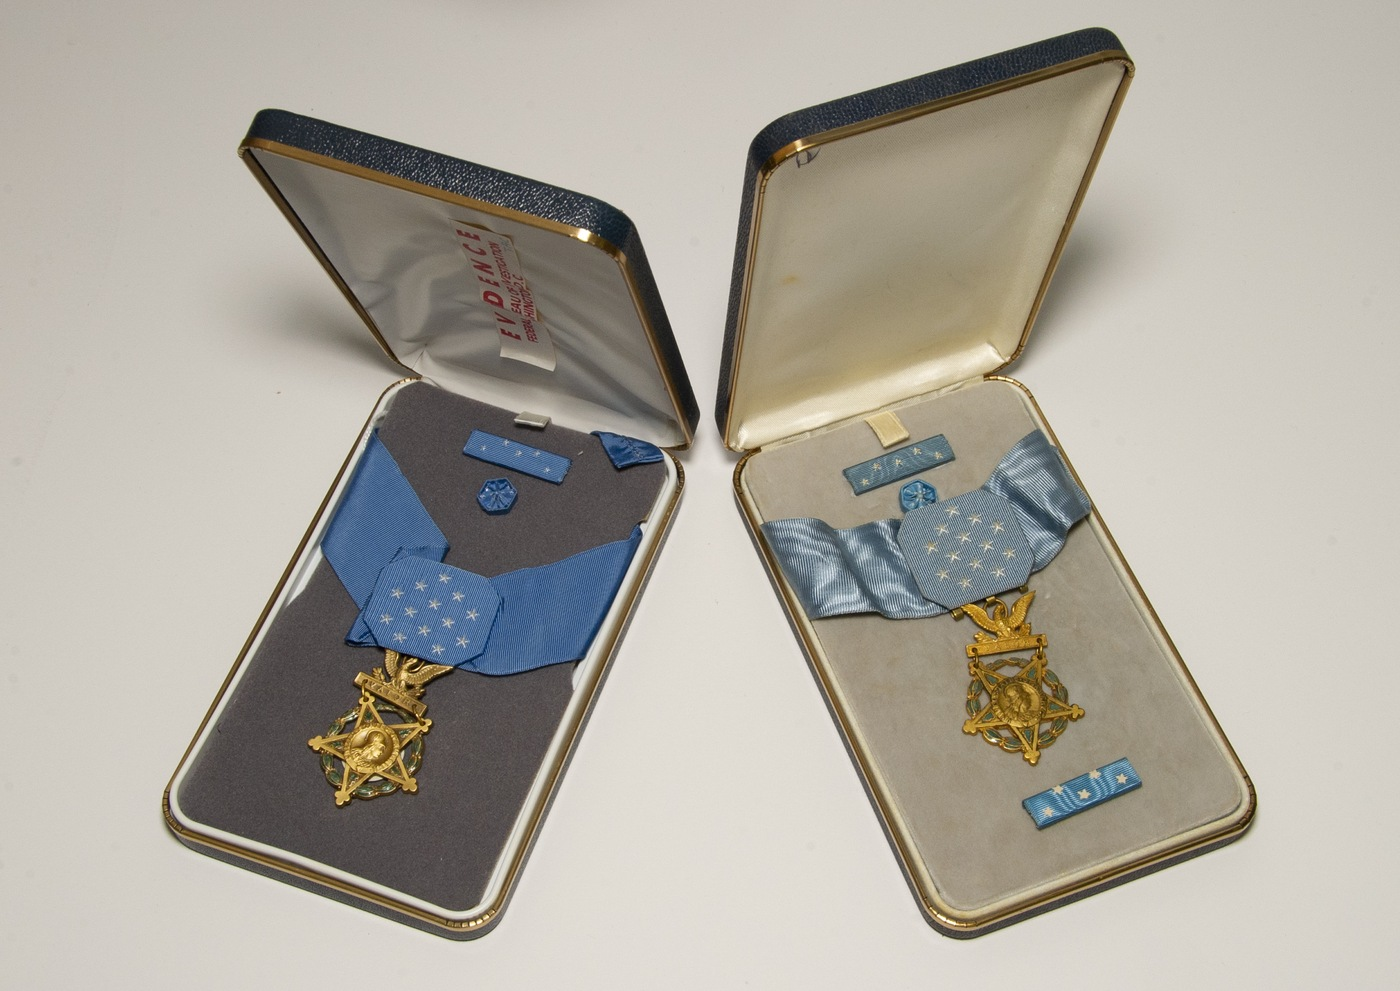 Photo of an unauthorized Medal of Honor (right) next to an authentic one (left). They were part of a 1990s FBI investigation into illegally manufactured Medals of Honor.